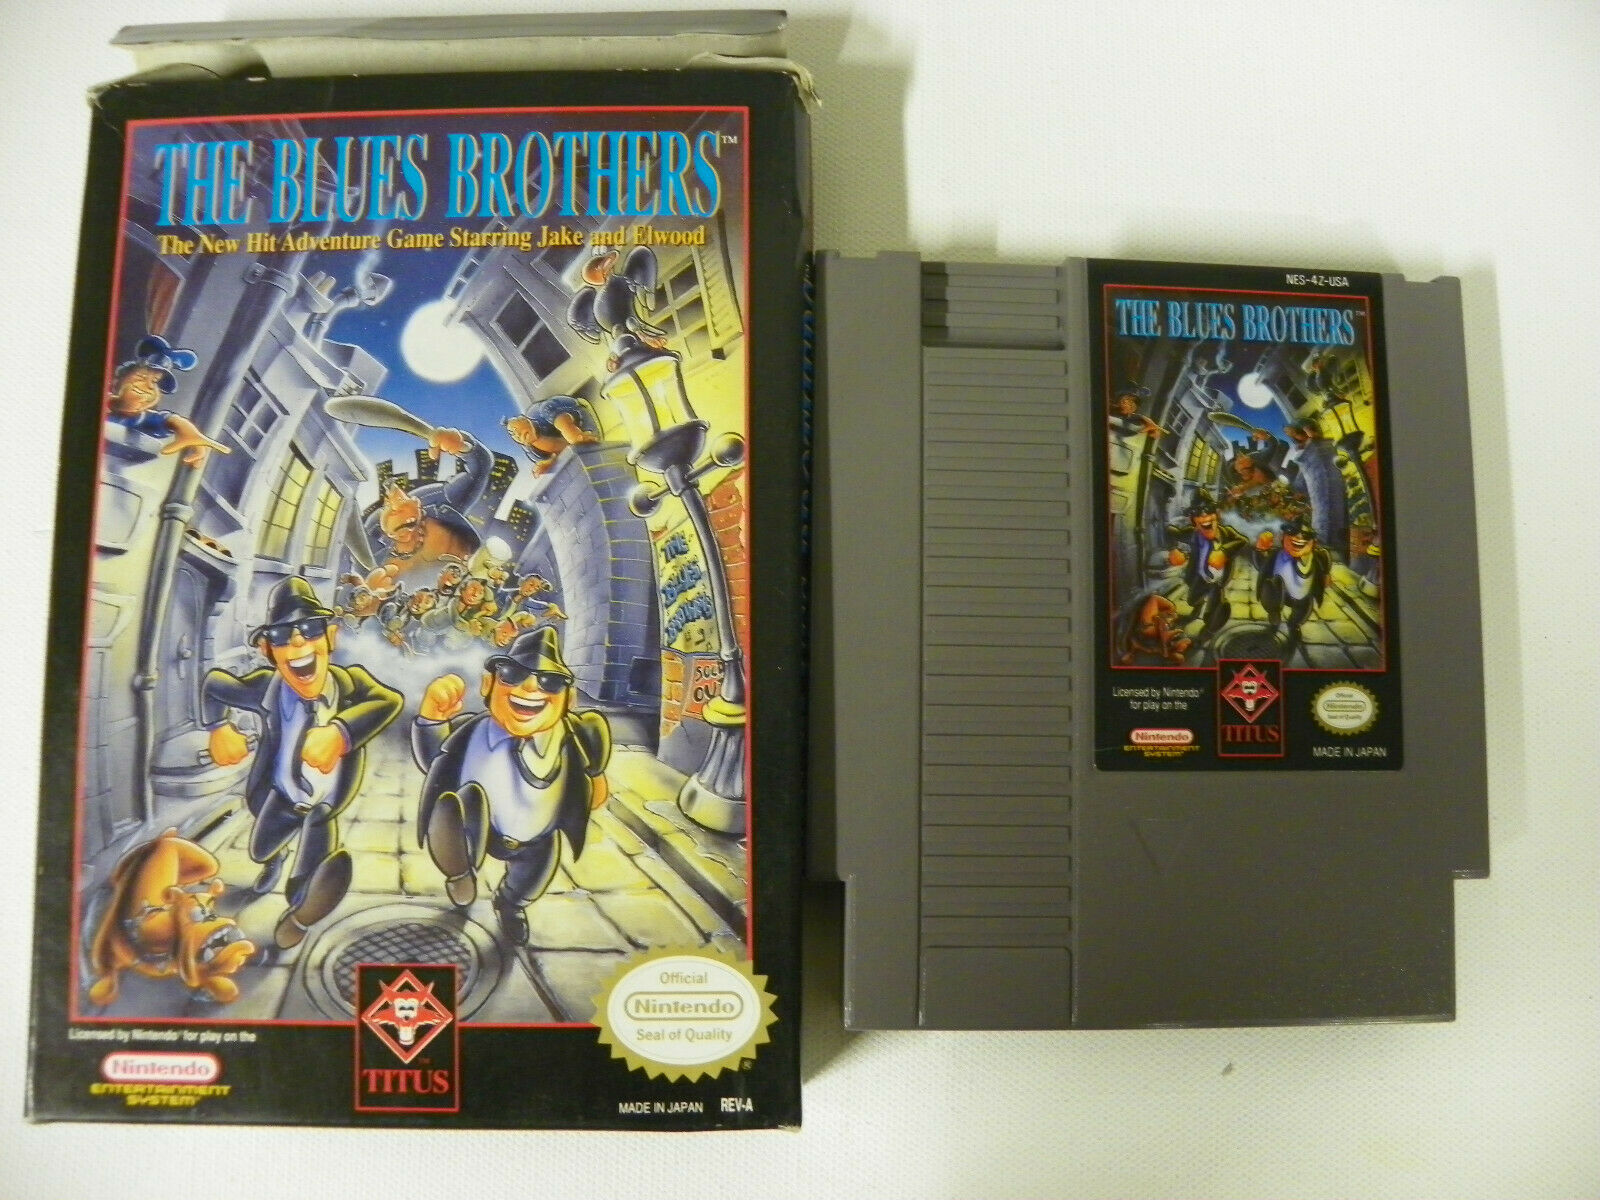 THE BLUES BROTHERS, NES, NINTENDO, BOX CART ONLY AUTHENTIC, TESTED, SEE PICS - $99.99